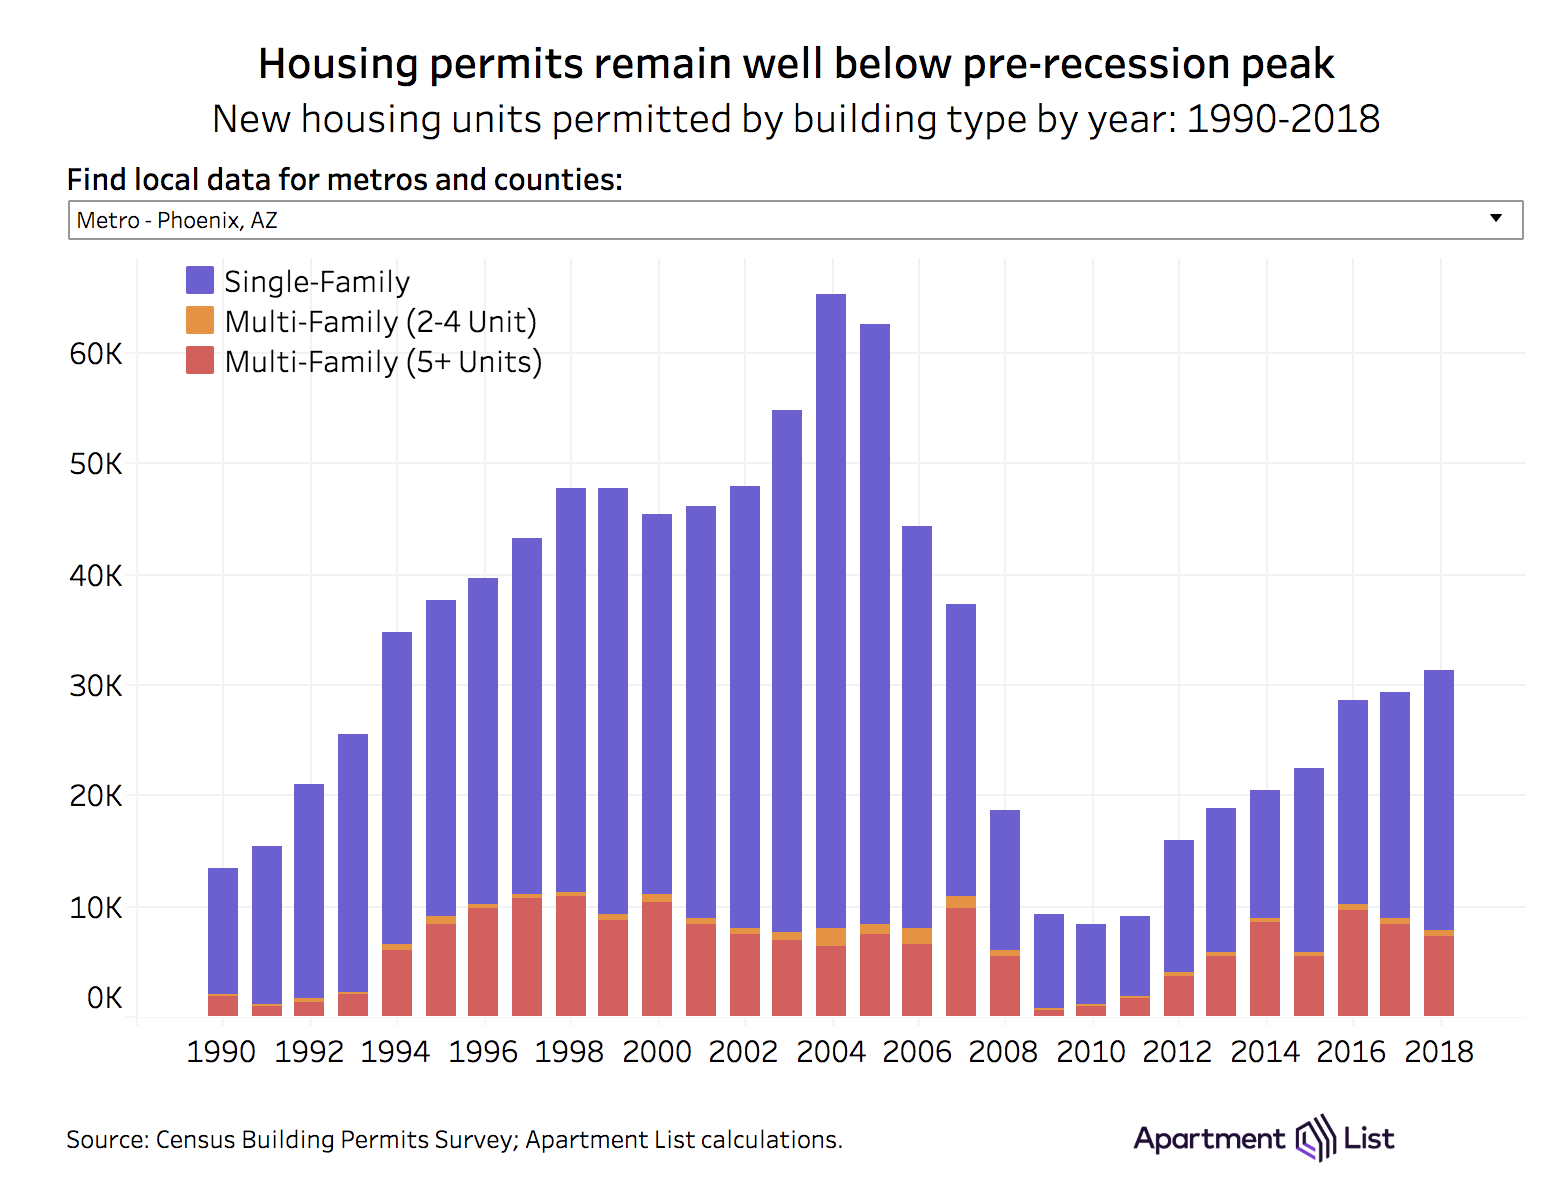 How Has Approved Housing Construction Kept Pace with Job Growth In The West?